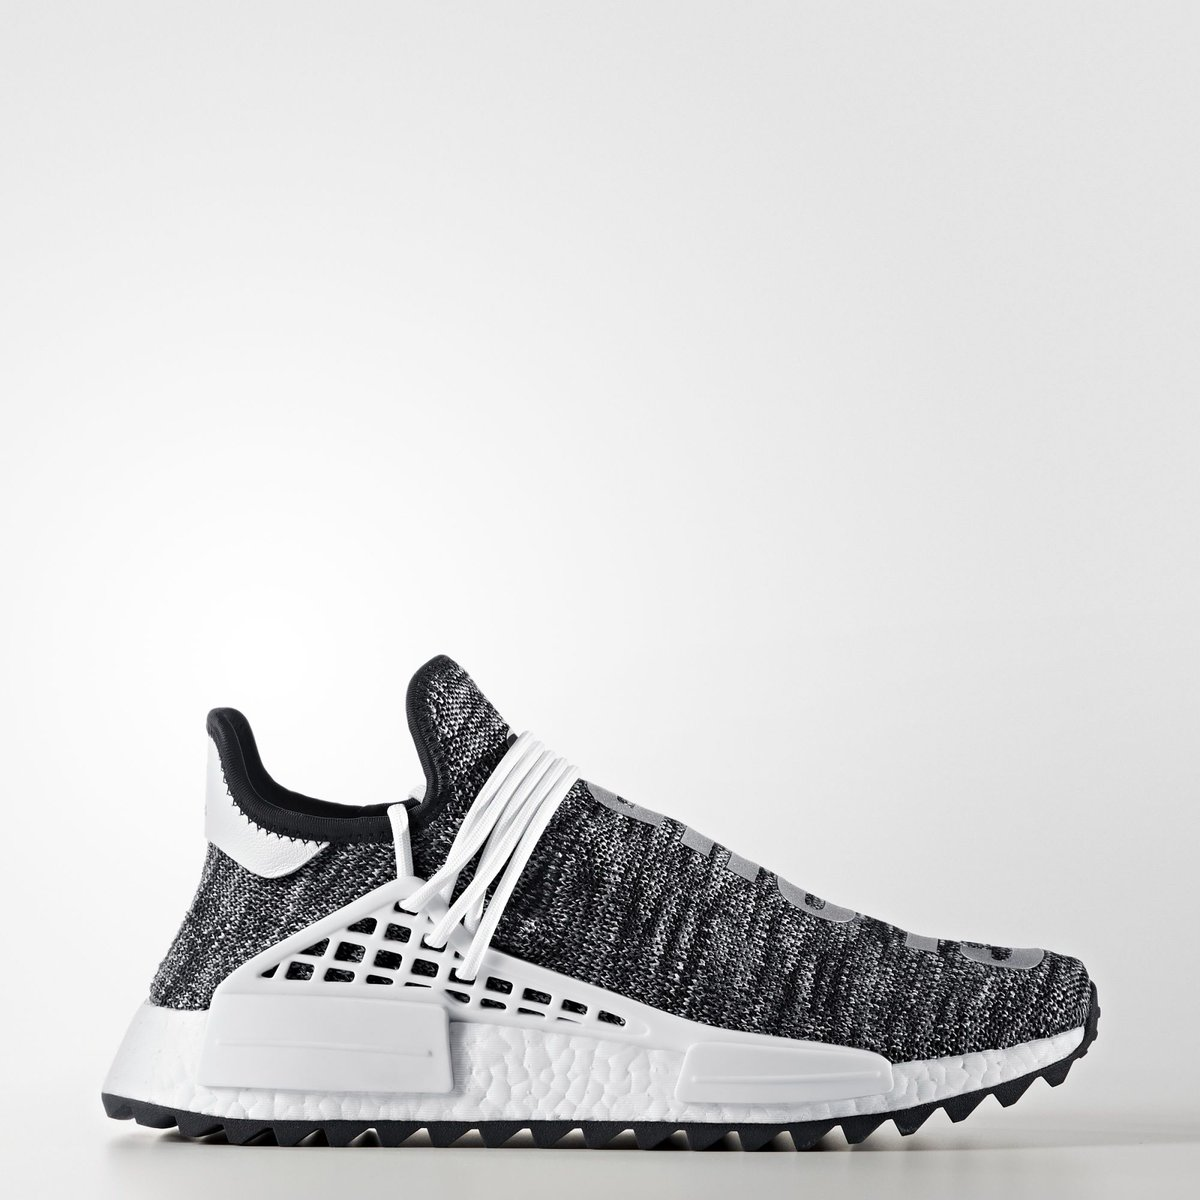 more photos 6e531 93f33 Official adidas images of the upcoming Black White  Pharrell x adidas NMD  Hu Trail, rumored to release in November.pic.twitter.com 5hL5xmEEgQ